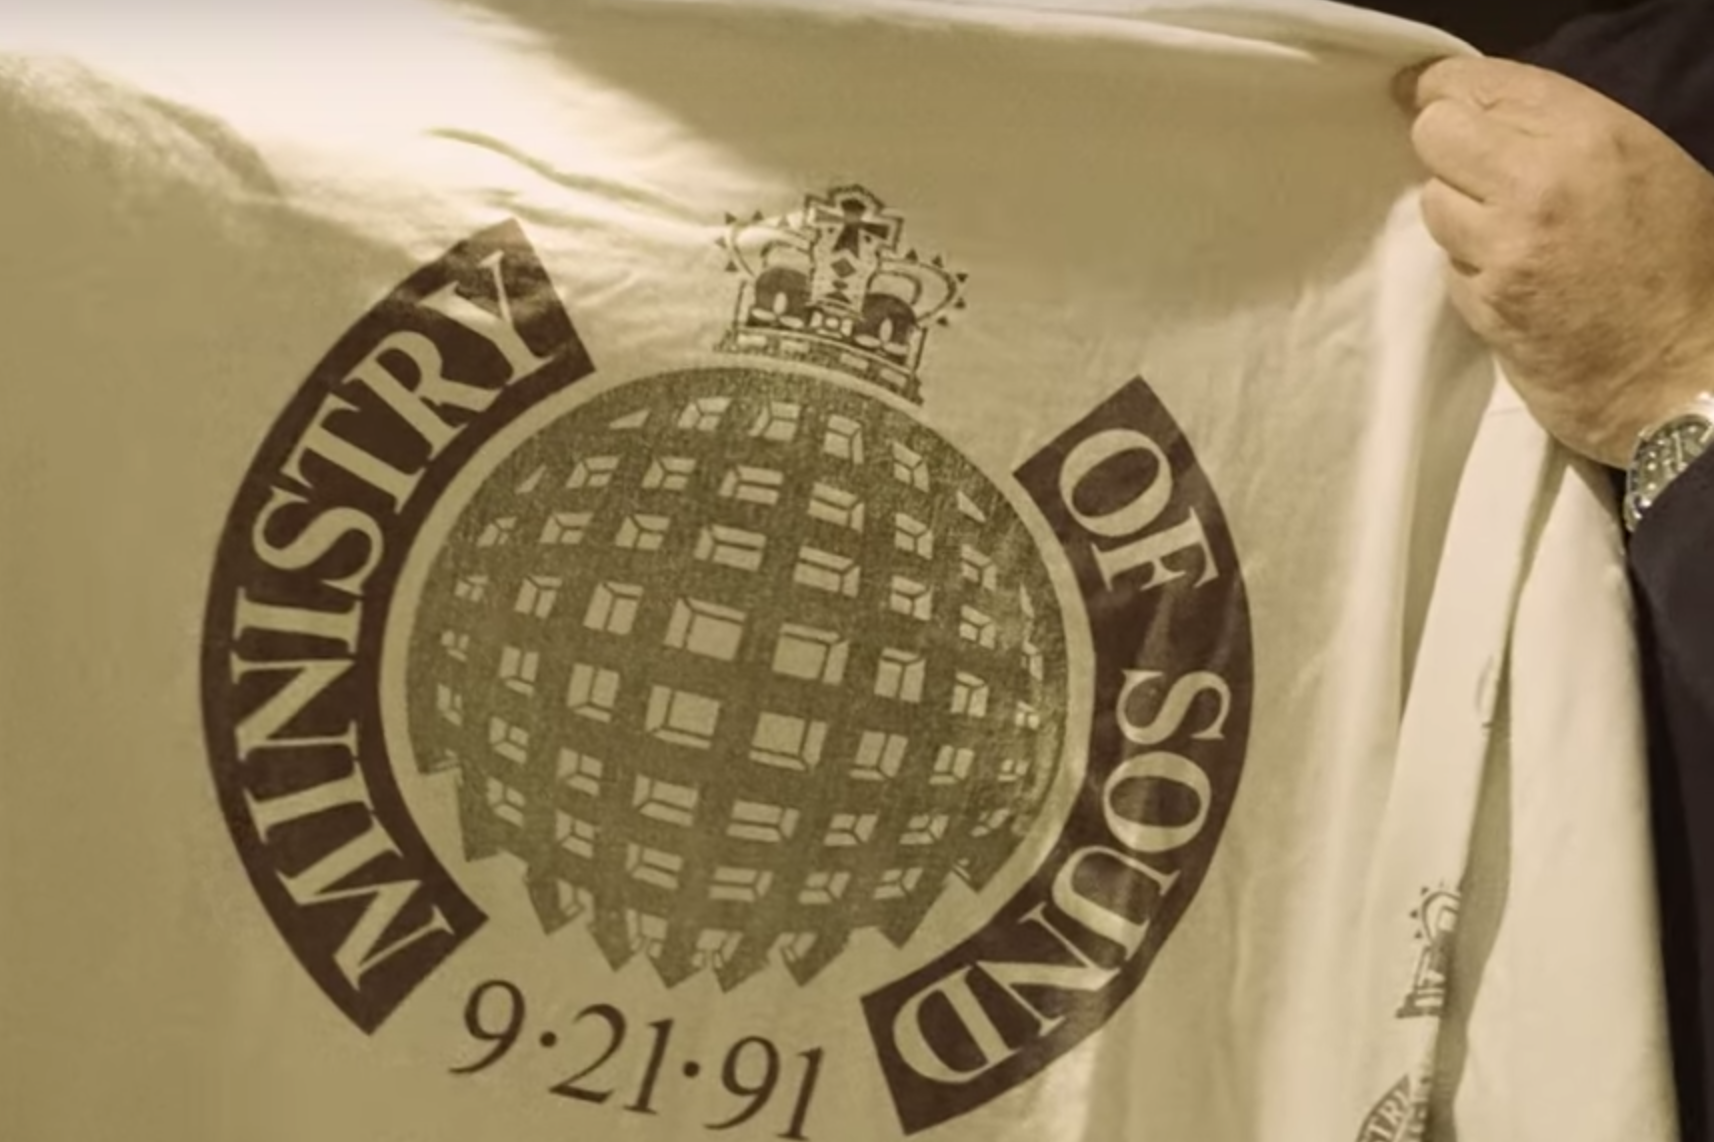 Ministry of Sound share mini-doc celebrating 25 years of The Annual mix series: Watch